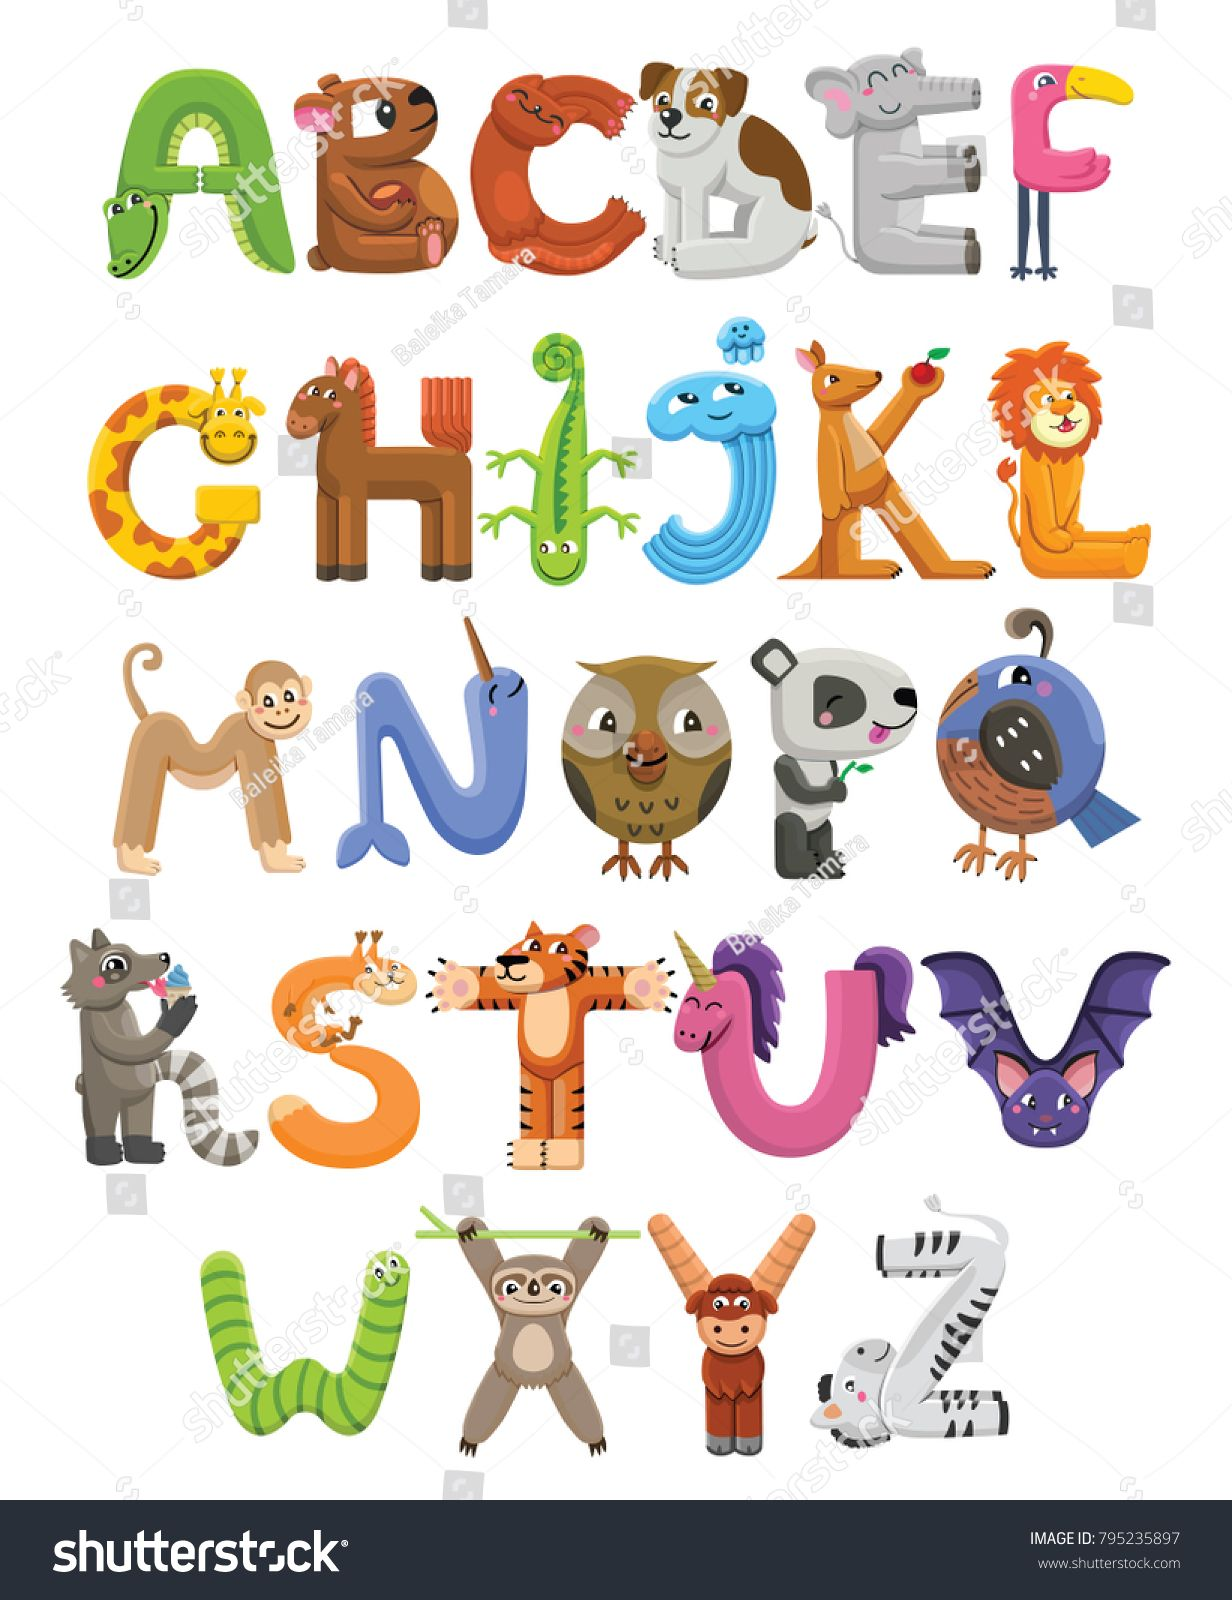 Zoo alphabet. Animal alphabet. Letters from A to Z